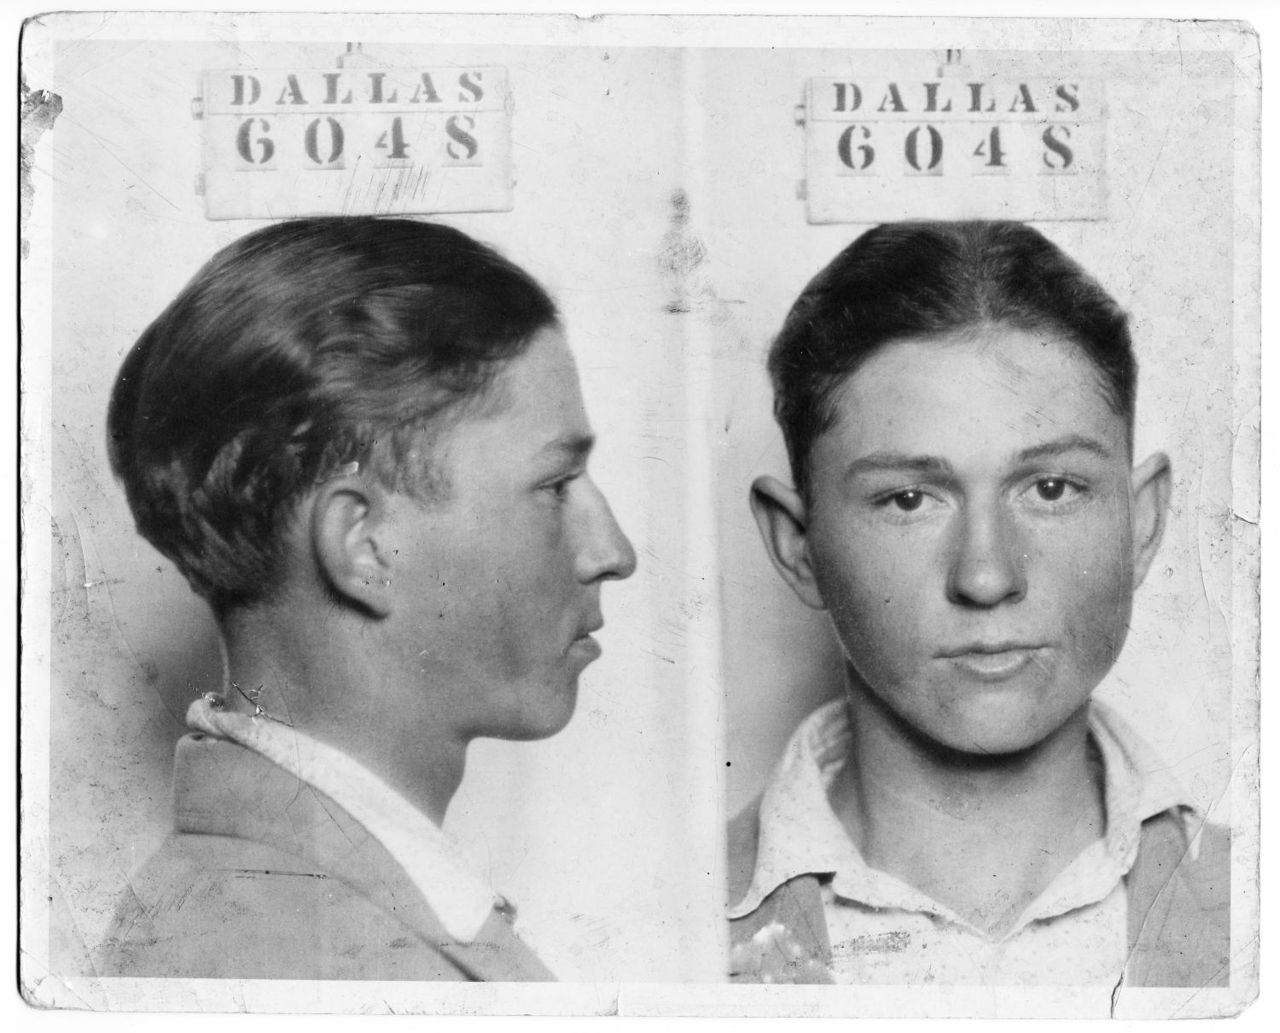 Clyde Barrow (of the famous bandit duo Bonnie & Clyde)